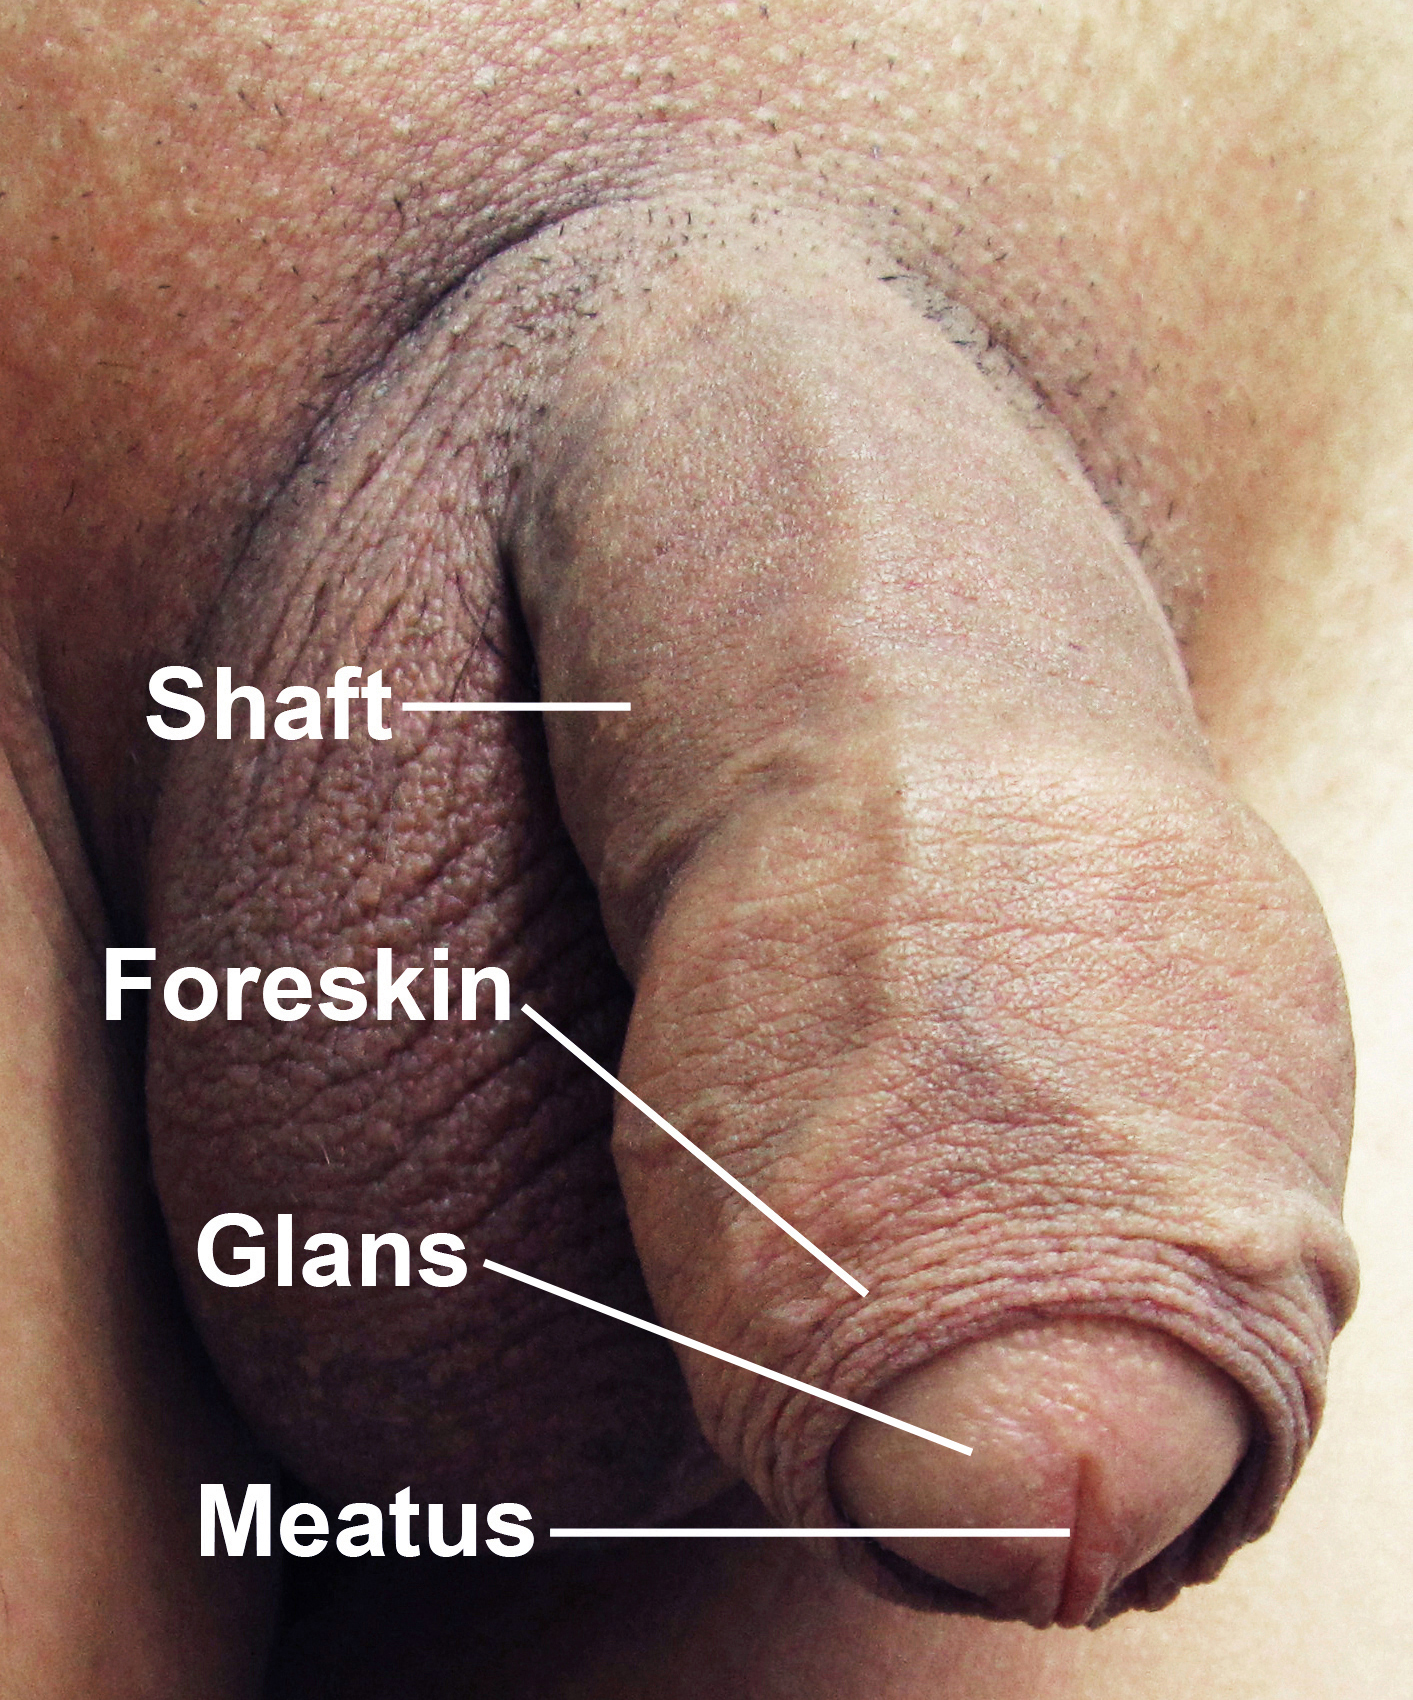 secy image head of penis in vaginal orifice